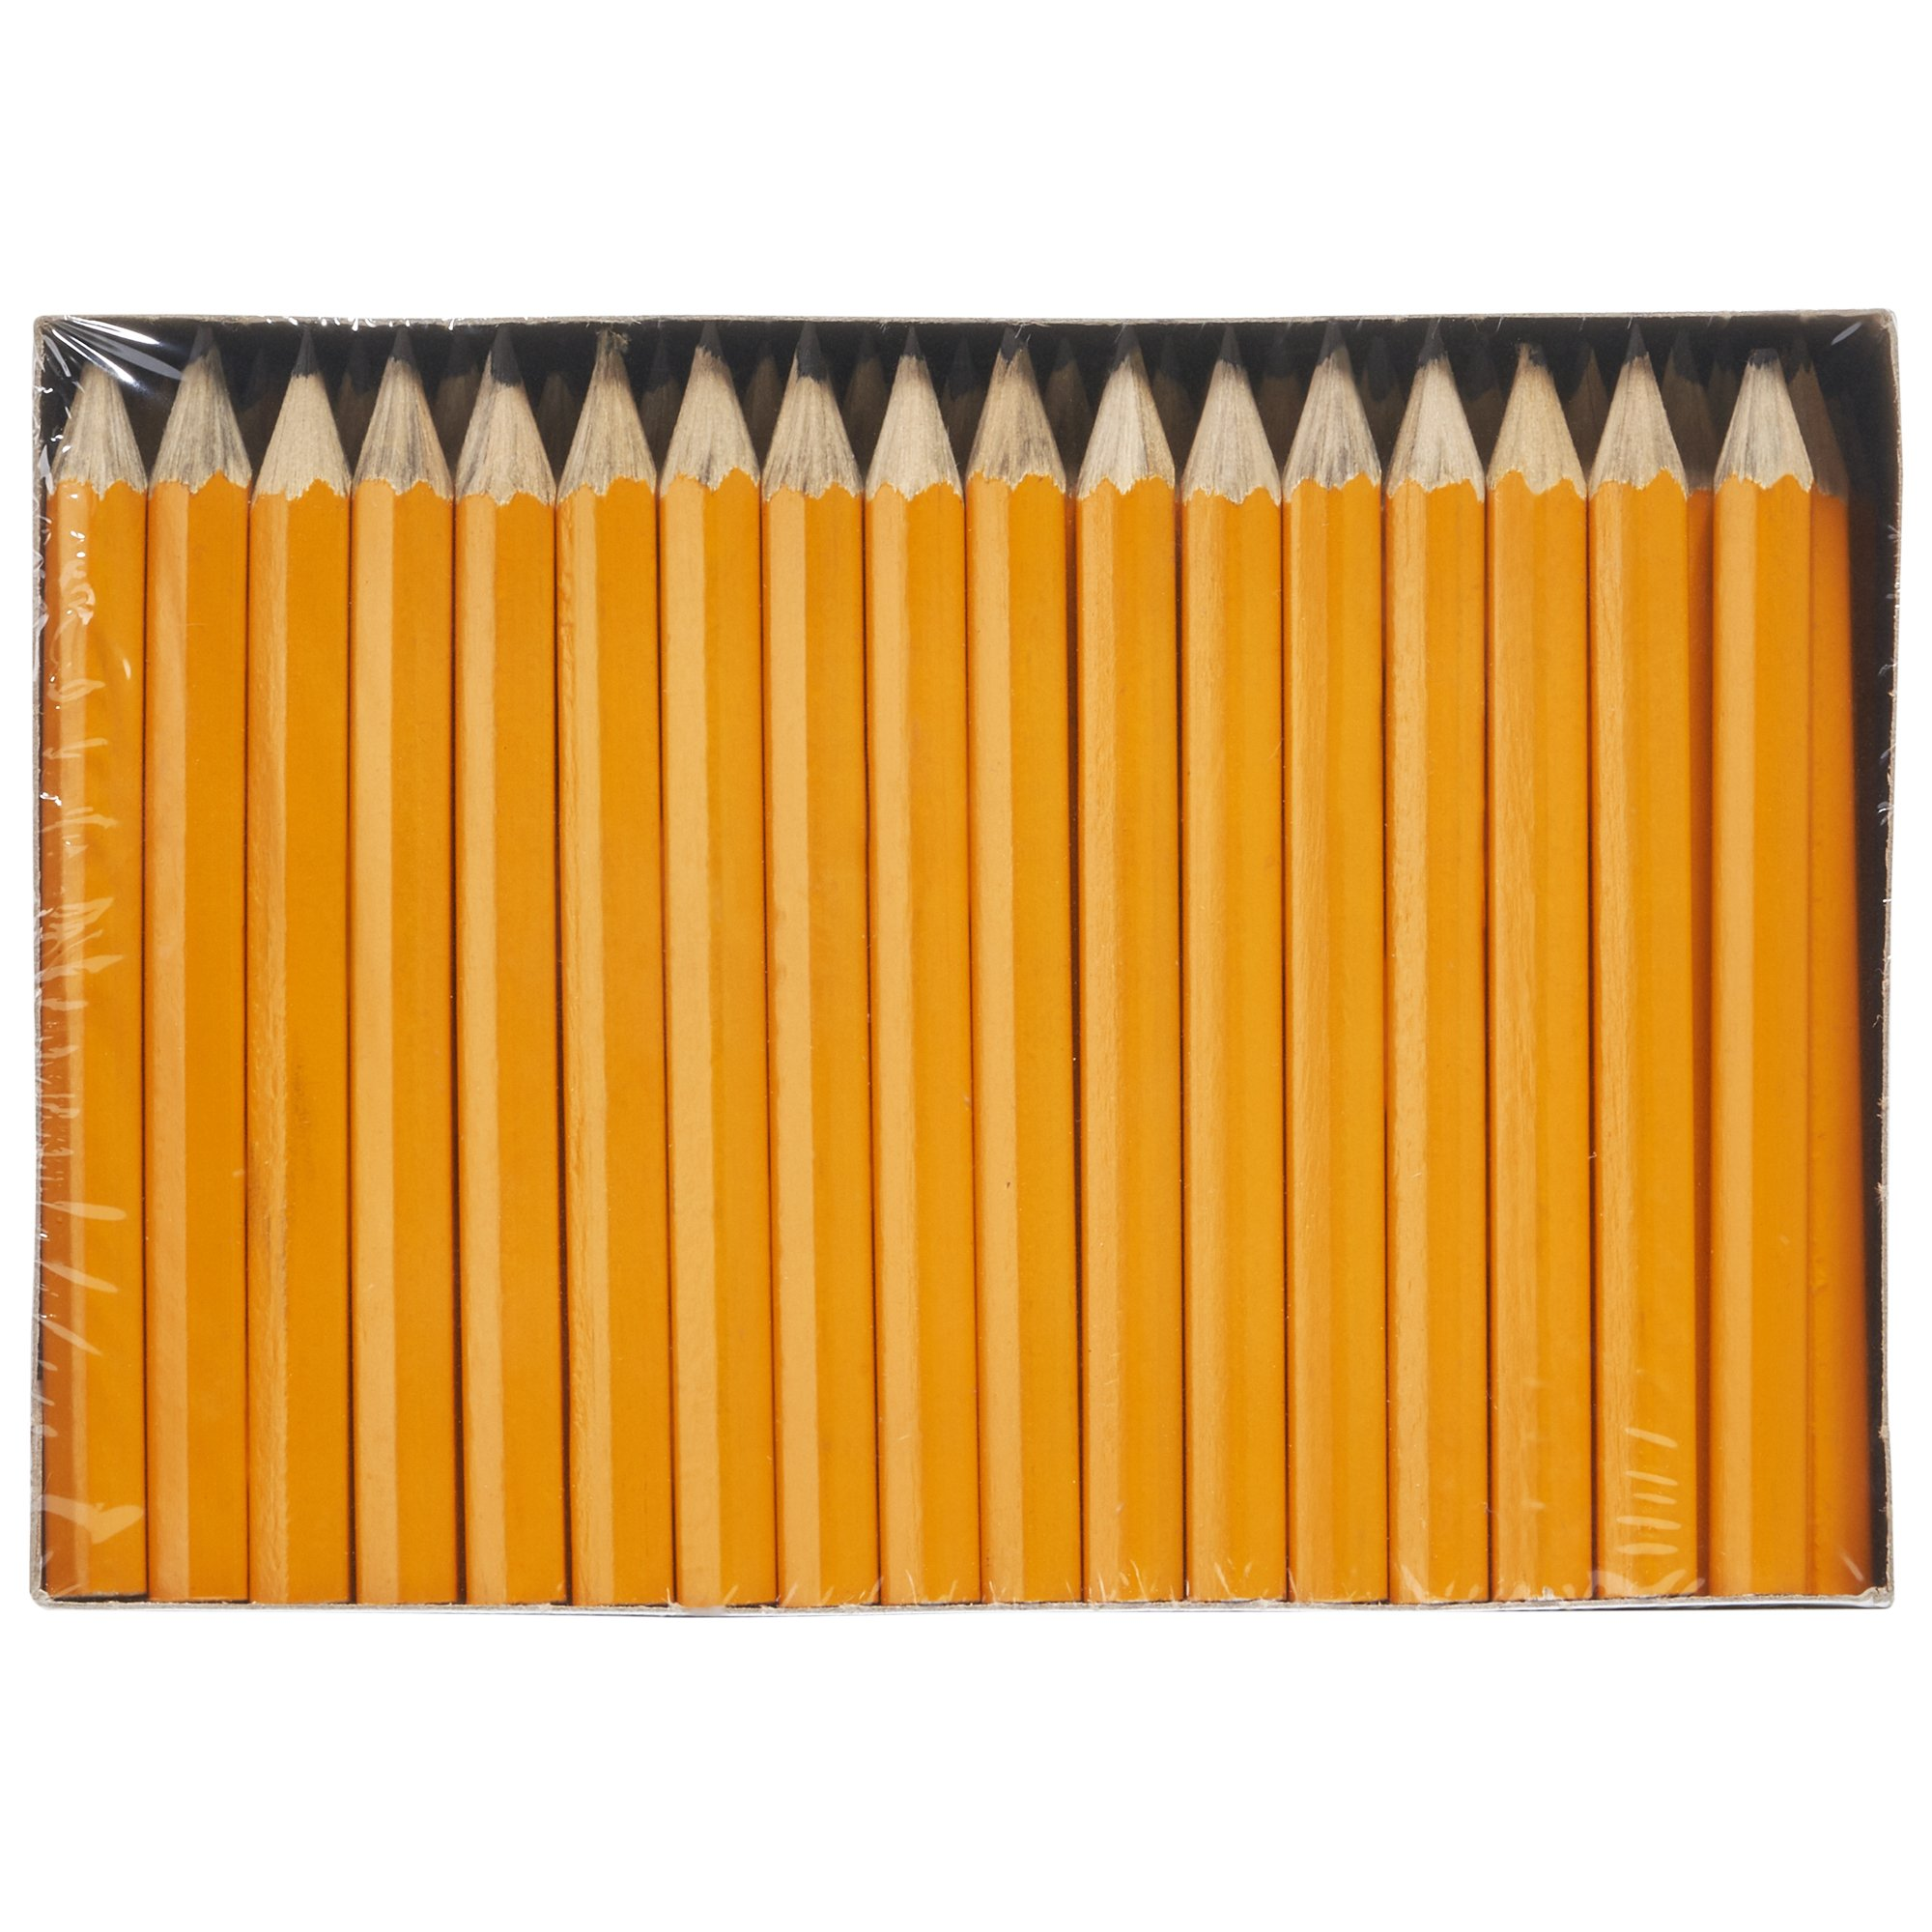 Dixon Golf Pencils, #2 HB Soft, Pre-Sharpened, Yellow, 144 Count (14998) by Dixon (Image #1)